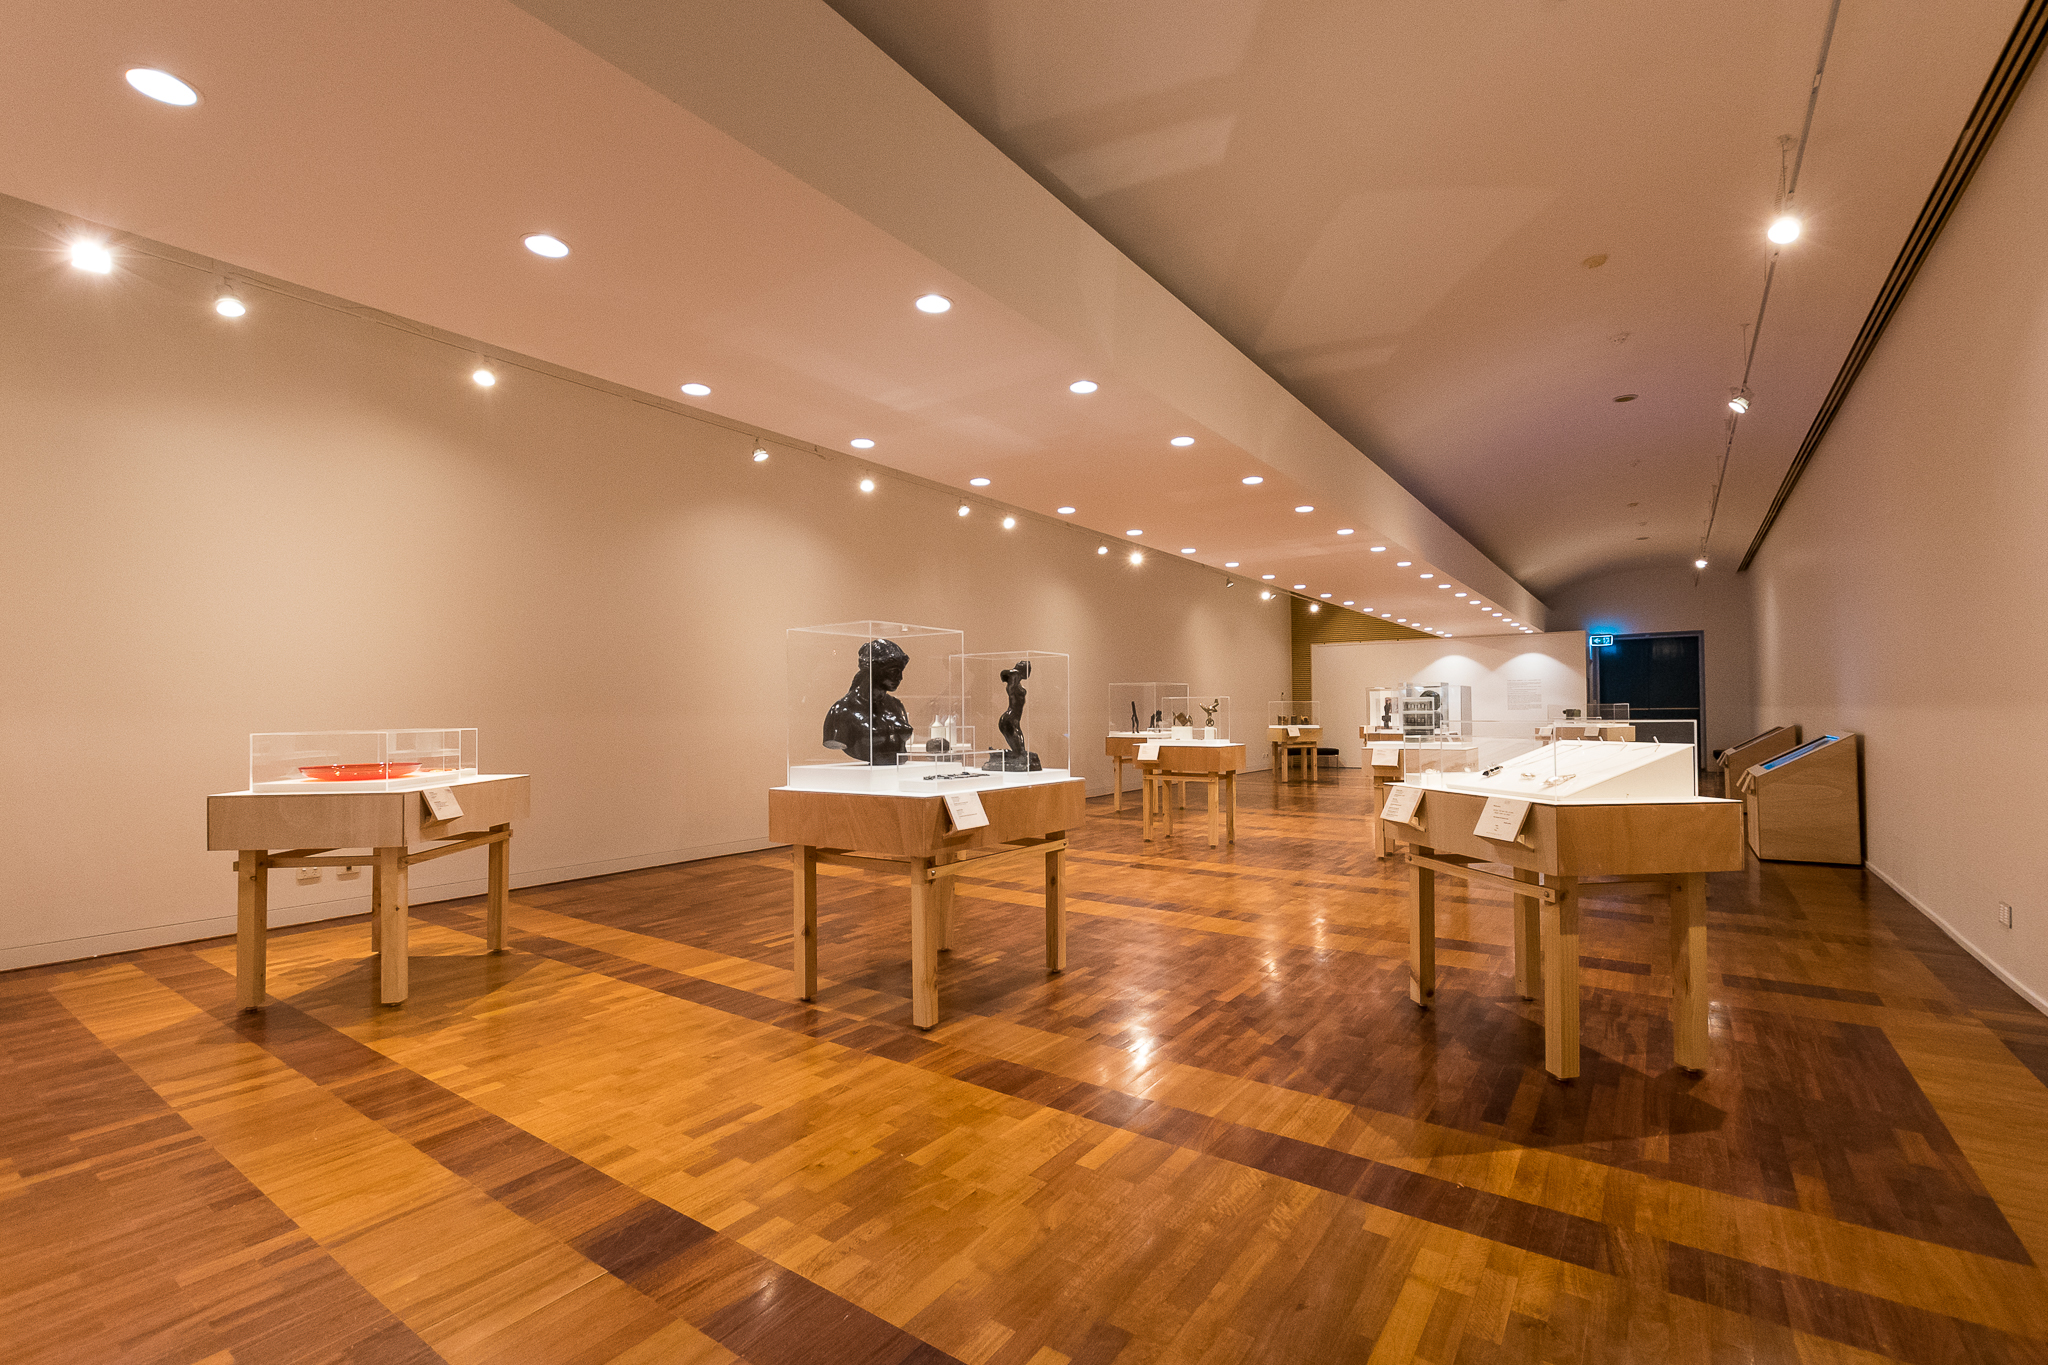 Interior of an art gallery with displays of art pieces.